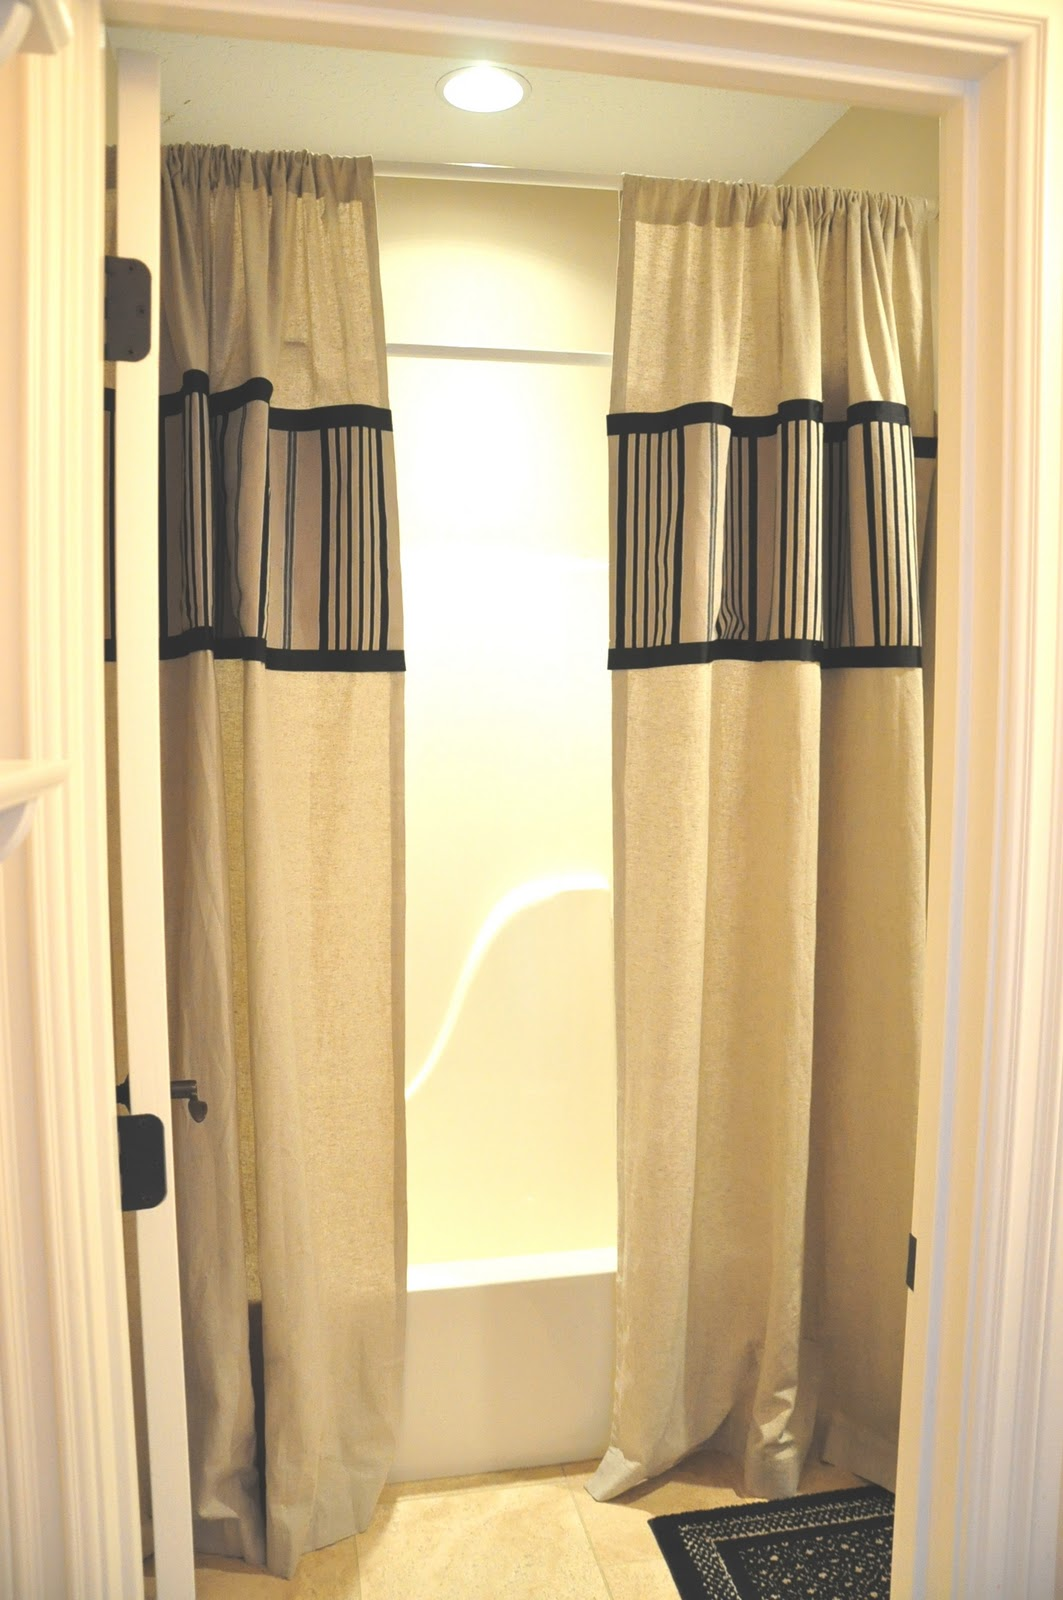 curtain window shower height curtains drapes rod images